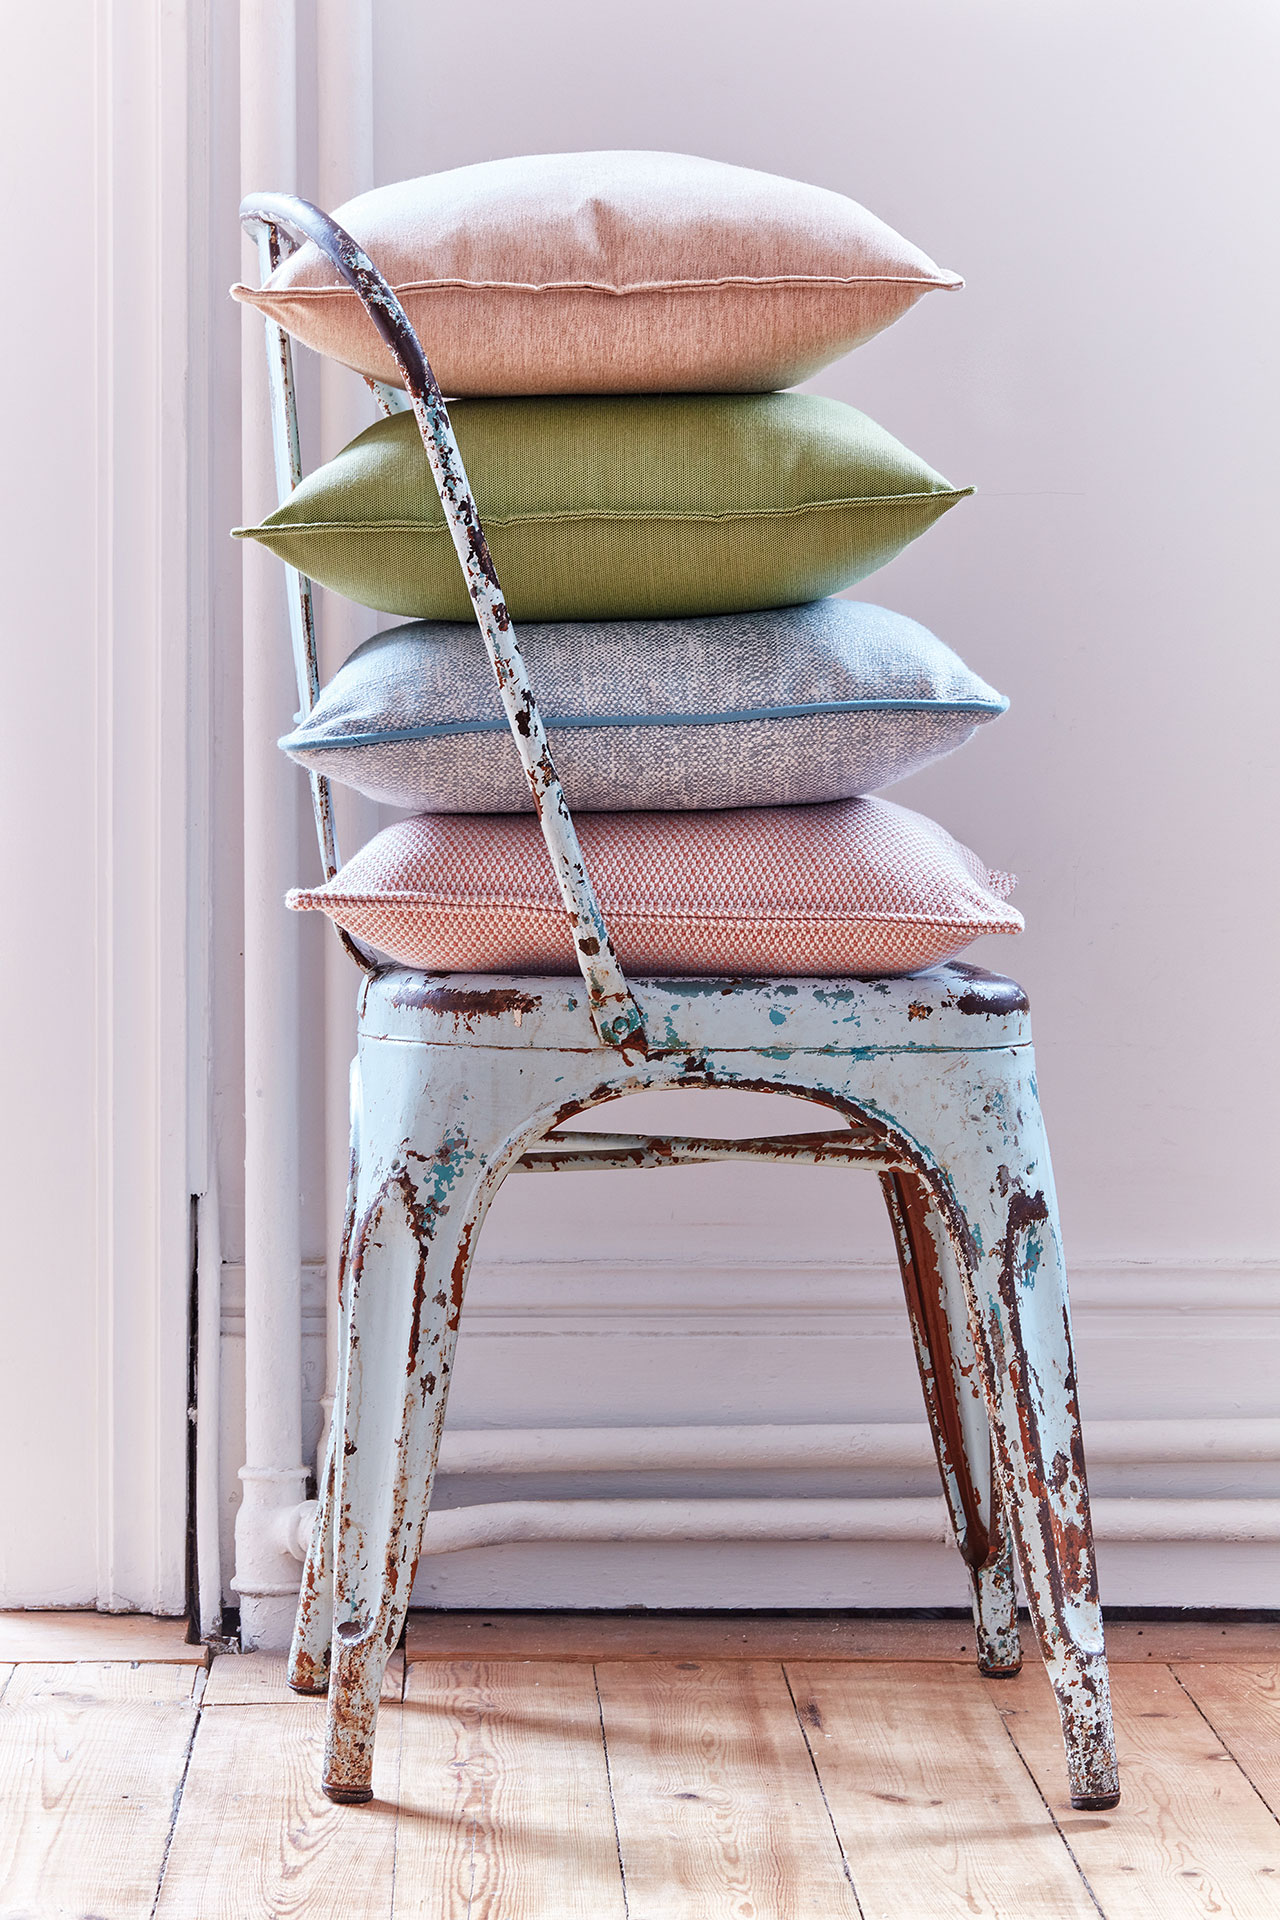 Pastel pillows are stacked on a distressed metal chair.